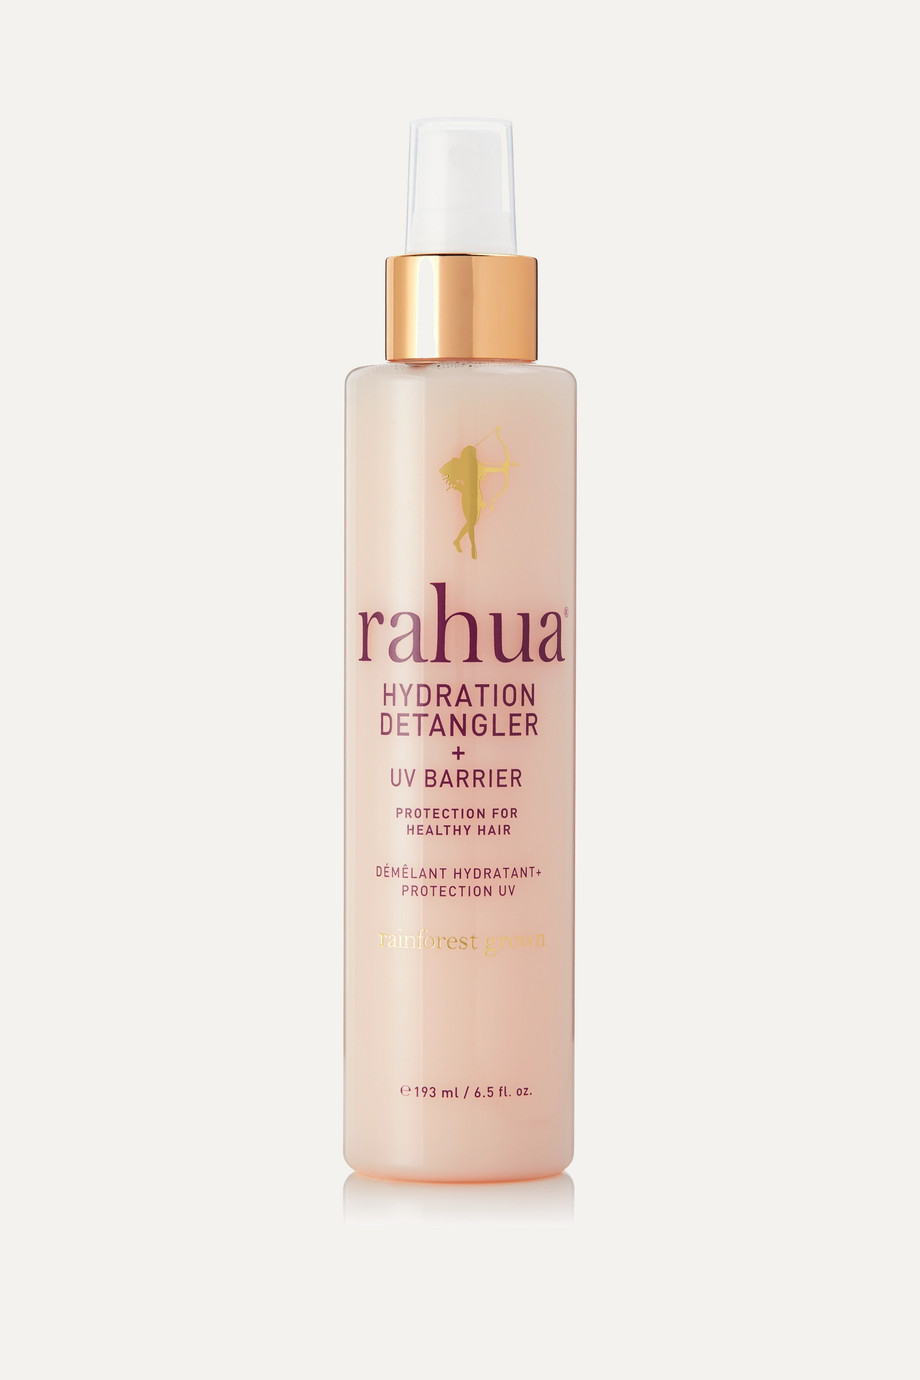 Rahua Hydration Detangler + UV Barrier, 193ml